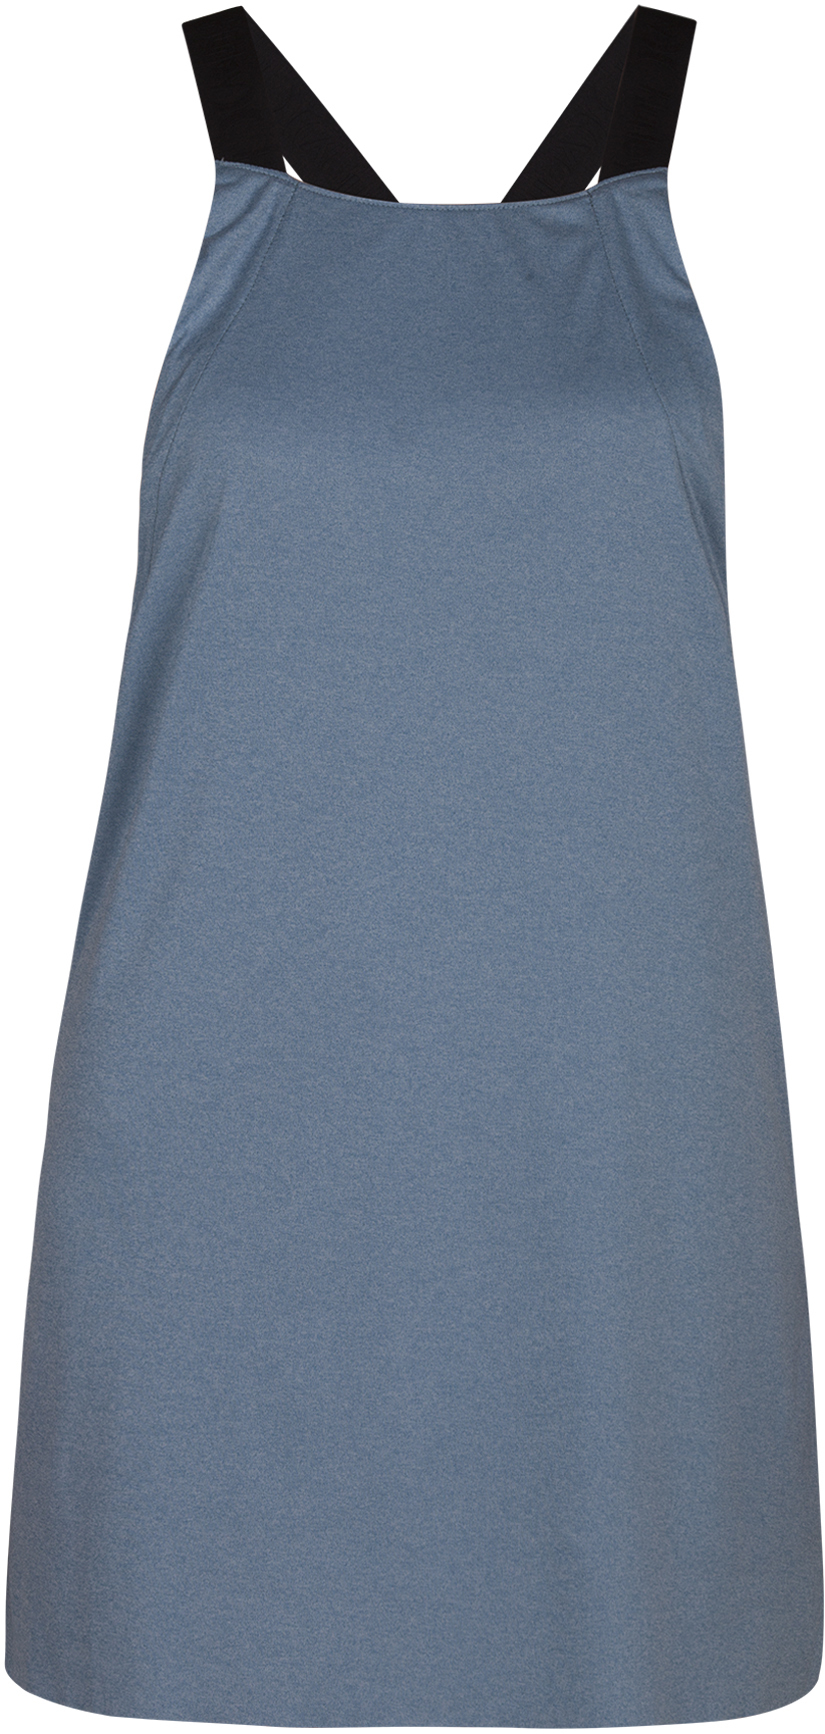 Hurley Quick Dry Tank Dress - $35.00